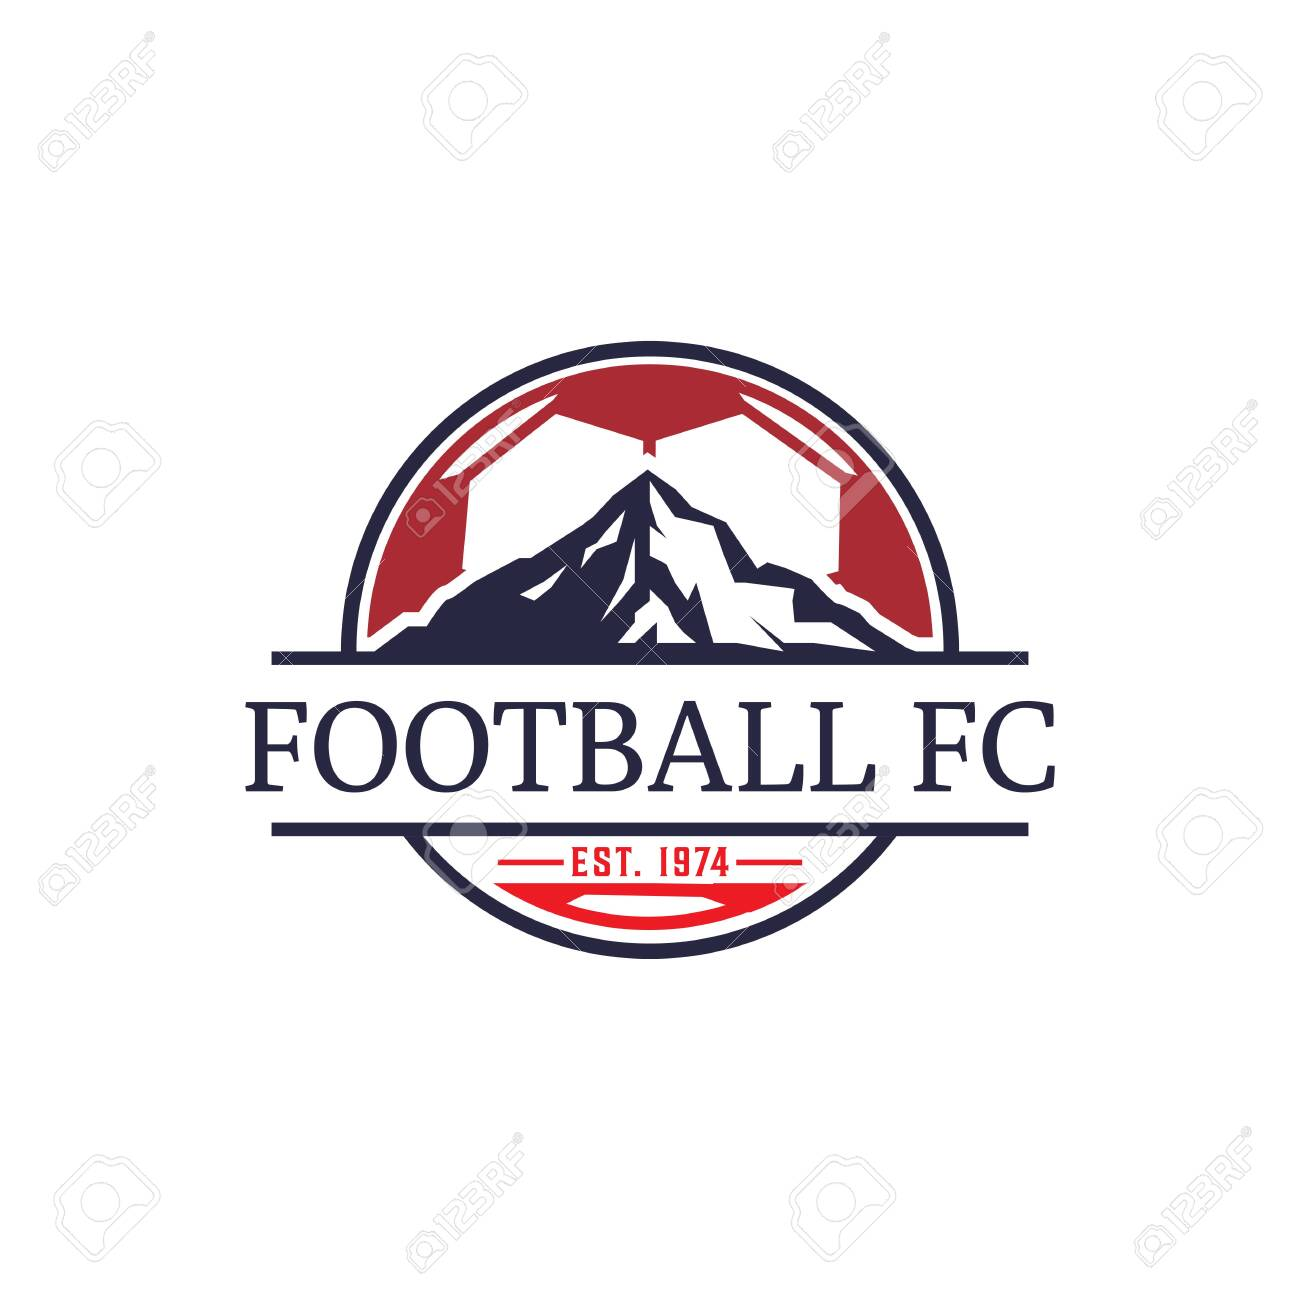 Football Club Logo Design Template Mountain Sport Logo Inspiration Royalty Free Cliparts Vectors And Stock Illustration Image 137942729